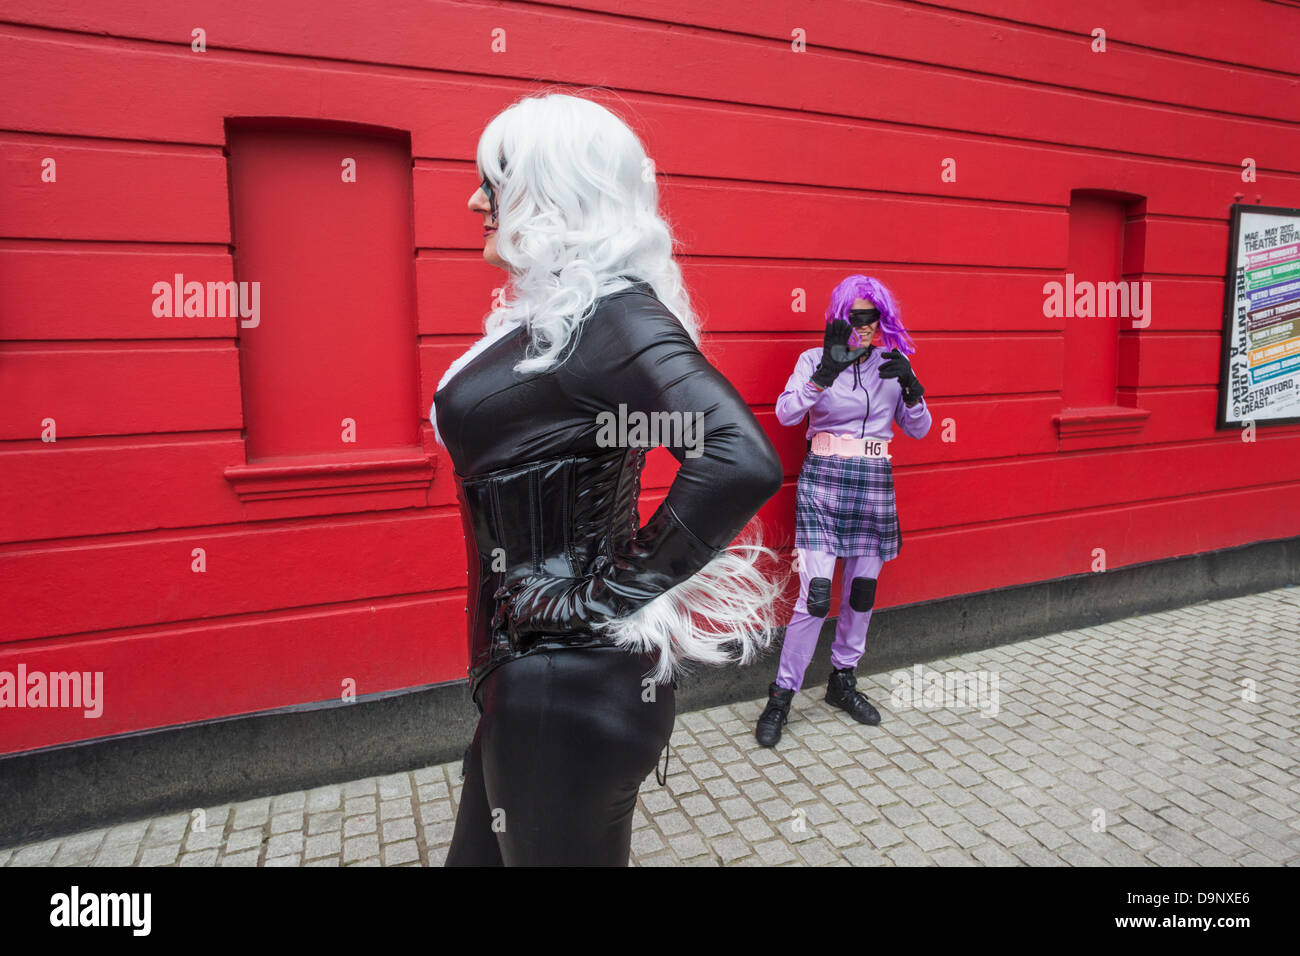 England, London, Stratford, Annual Sci-fi Costume Parade, Sci-fi Movie Characters - Stock Image